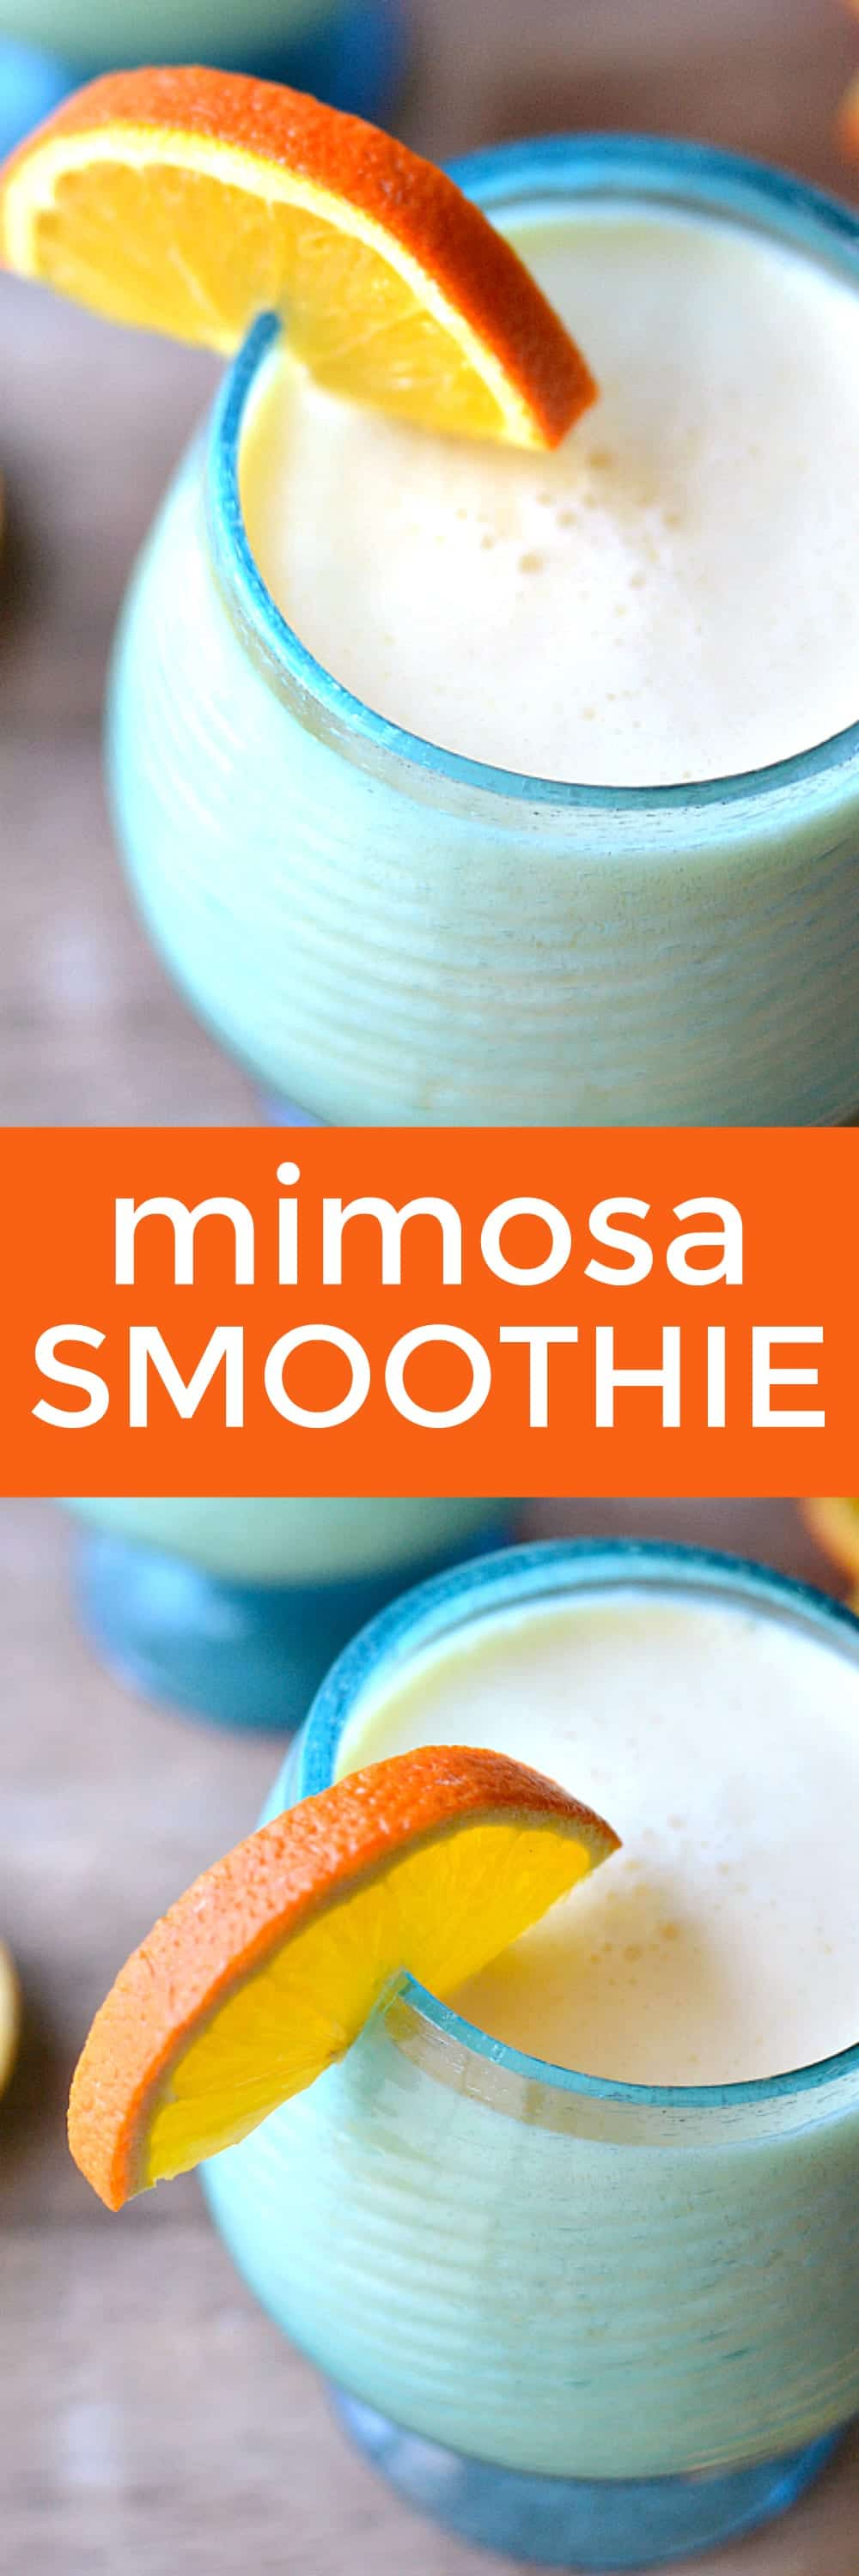 A Mimosa Smoothie combines the delicious flavors of your favorite brunch drink with creamy vanilla yogurt. This 3 ingredient breakfast smoothie is cause for celebration!